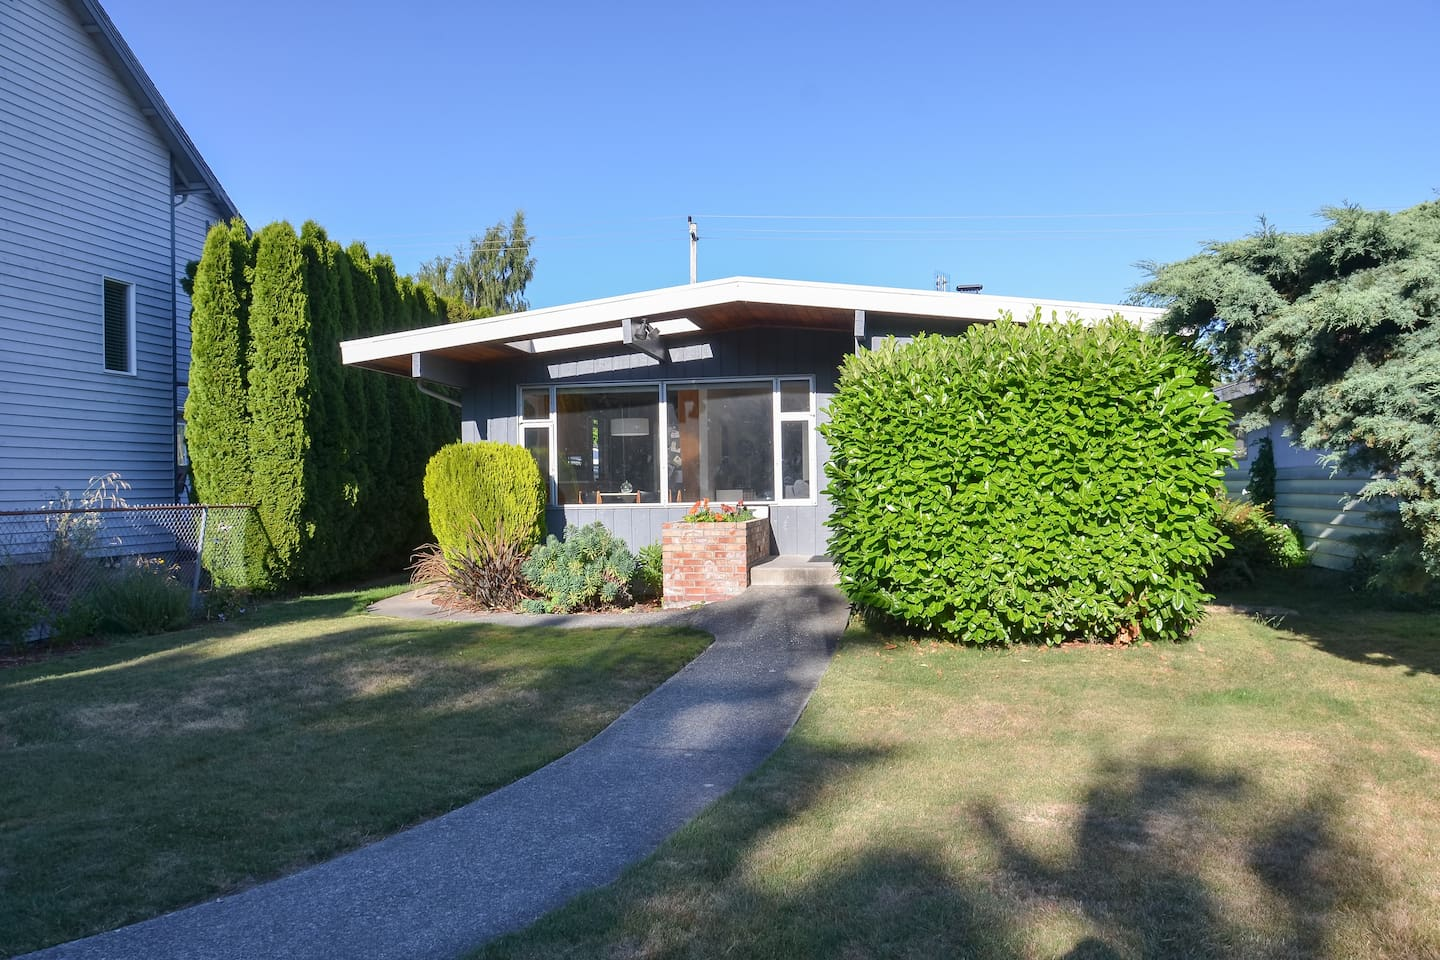 west seattle mid century modern houses for rent in seattle